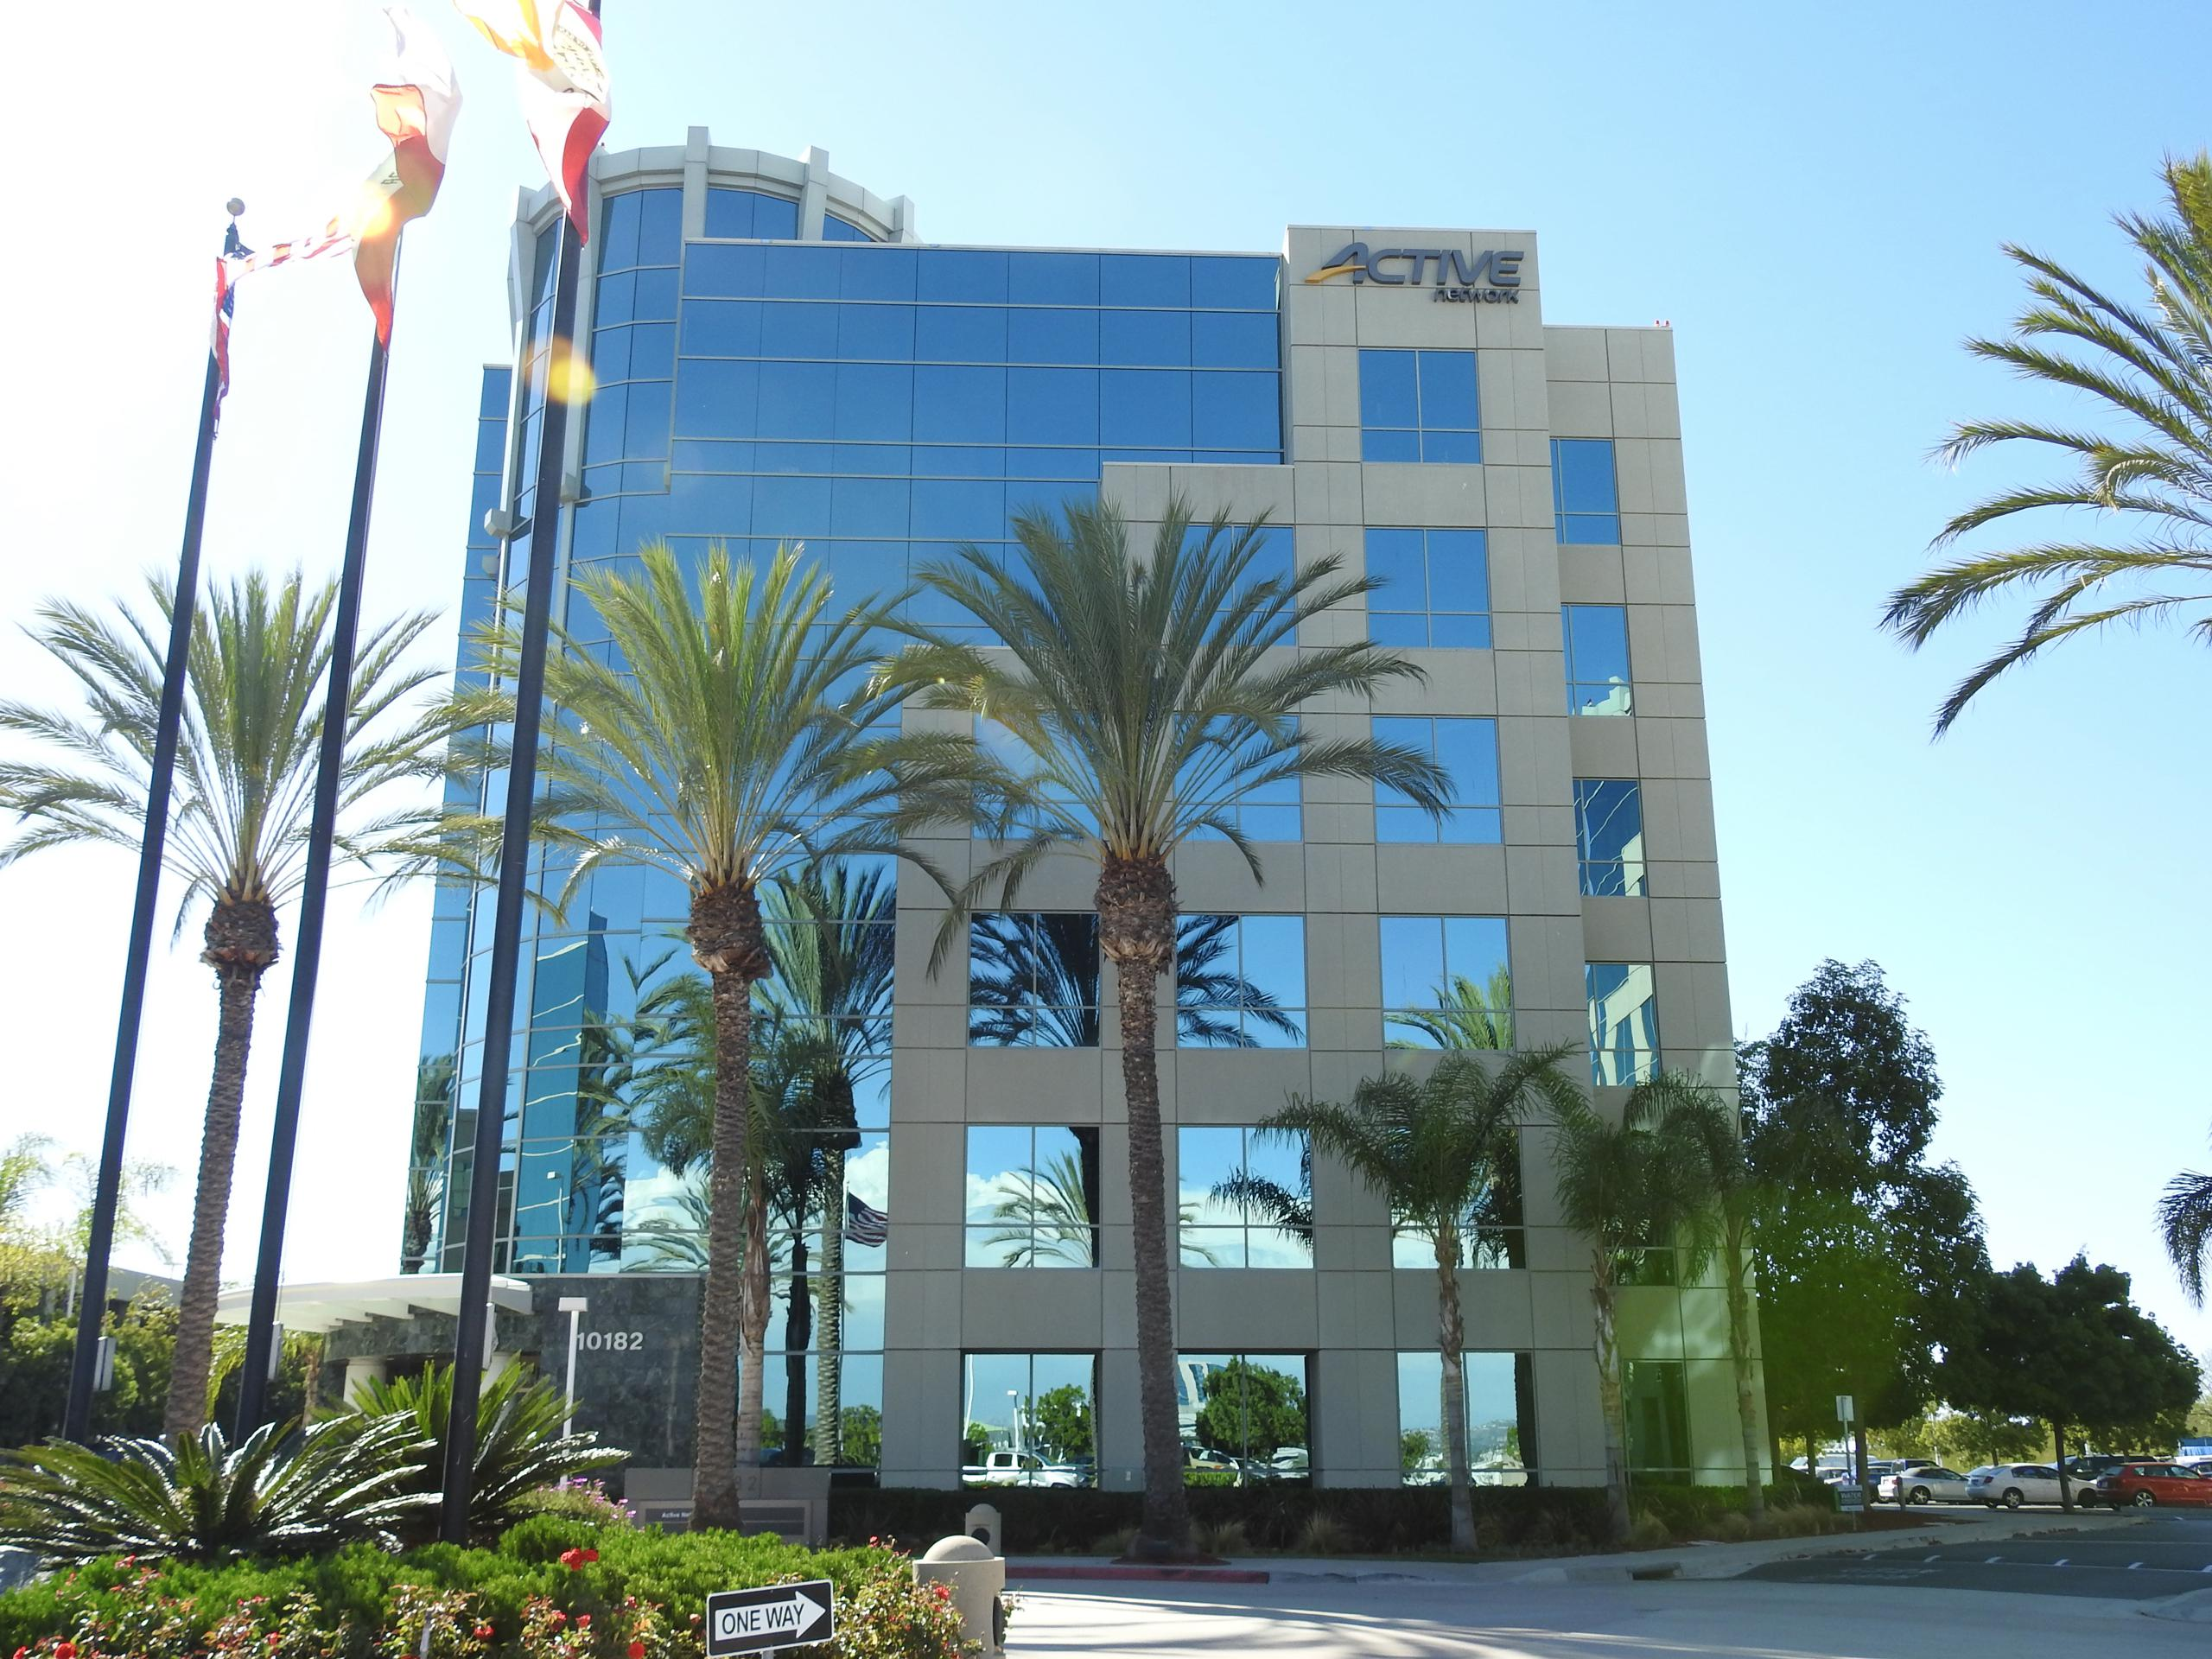 The Active Network's corporate headquarters in San Diego, California.